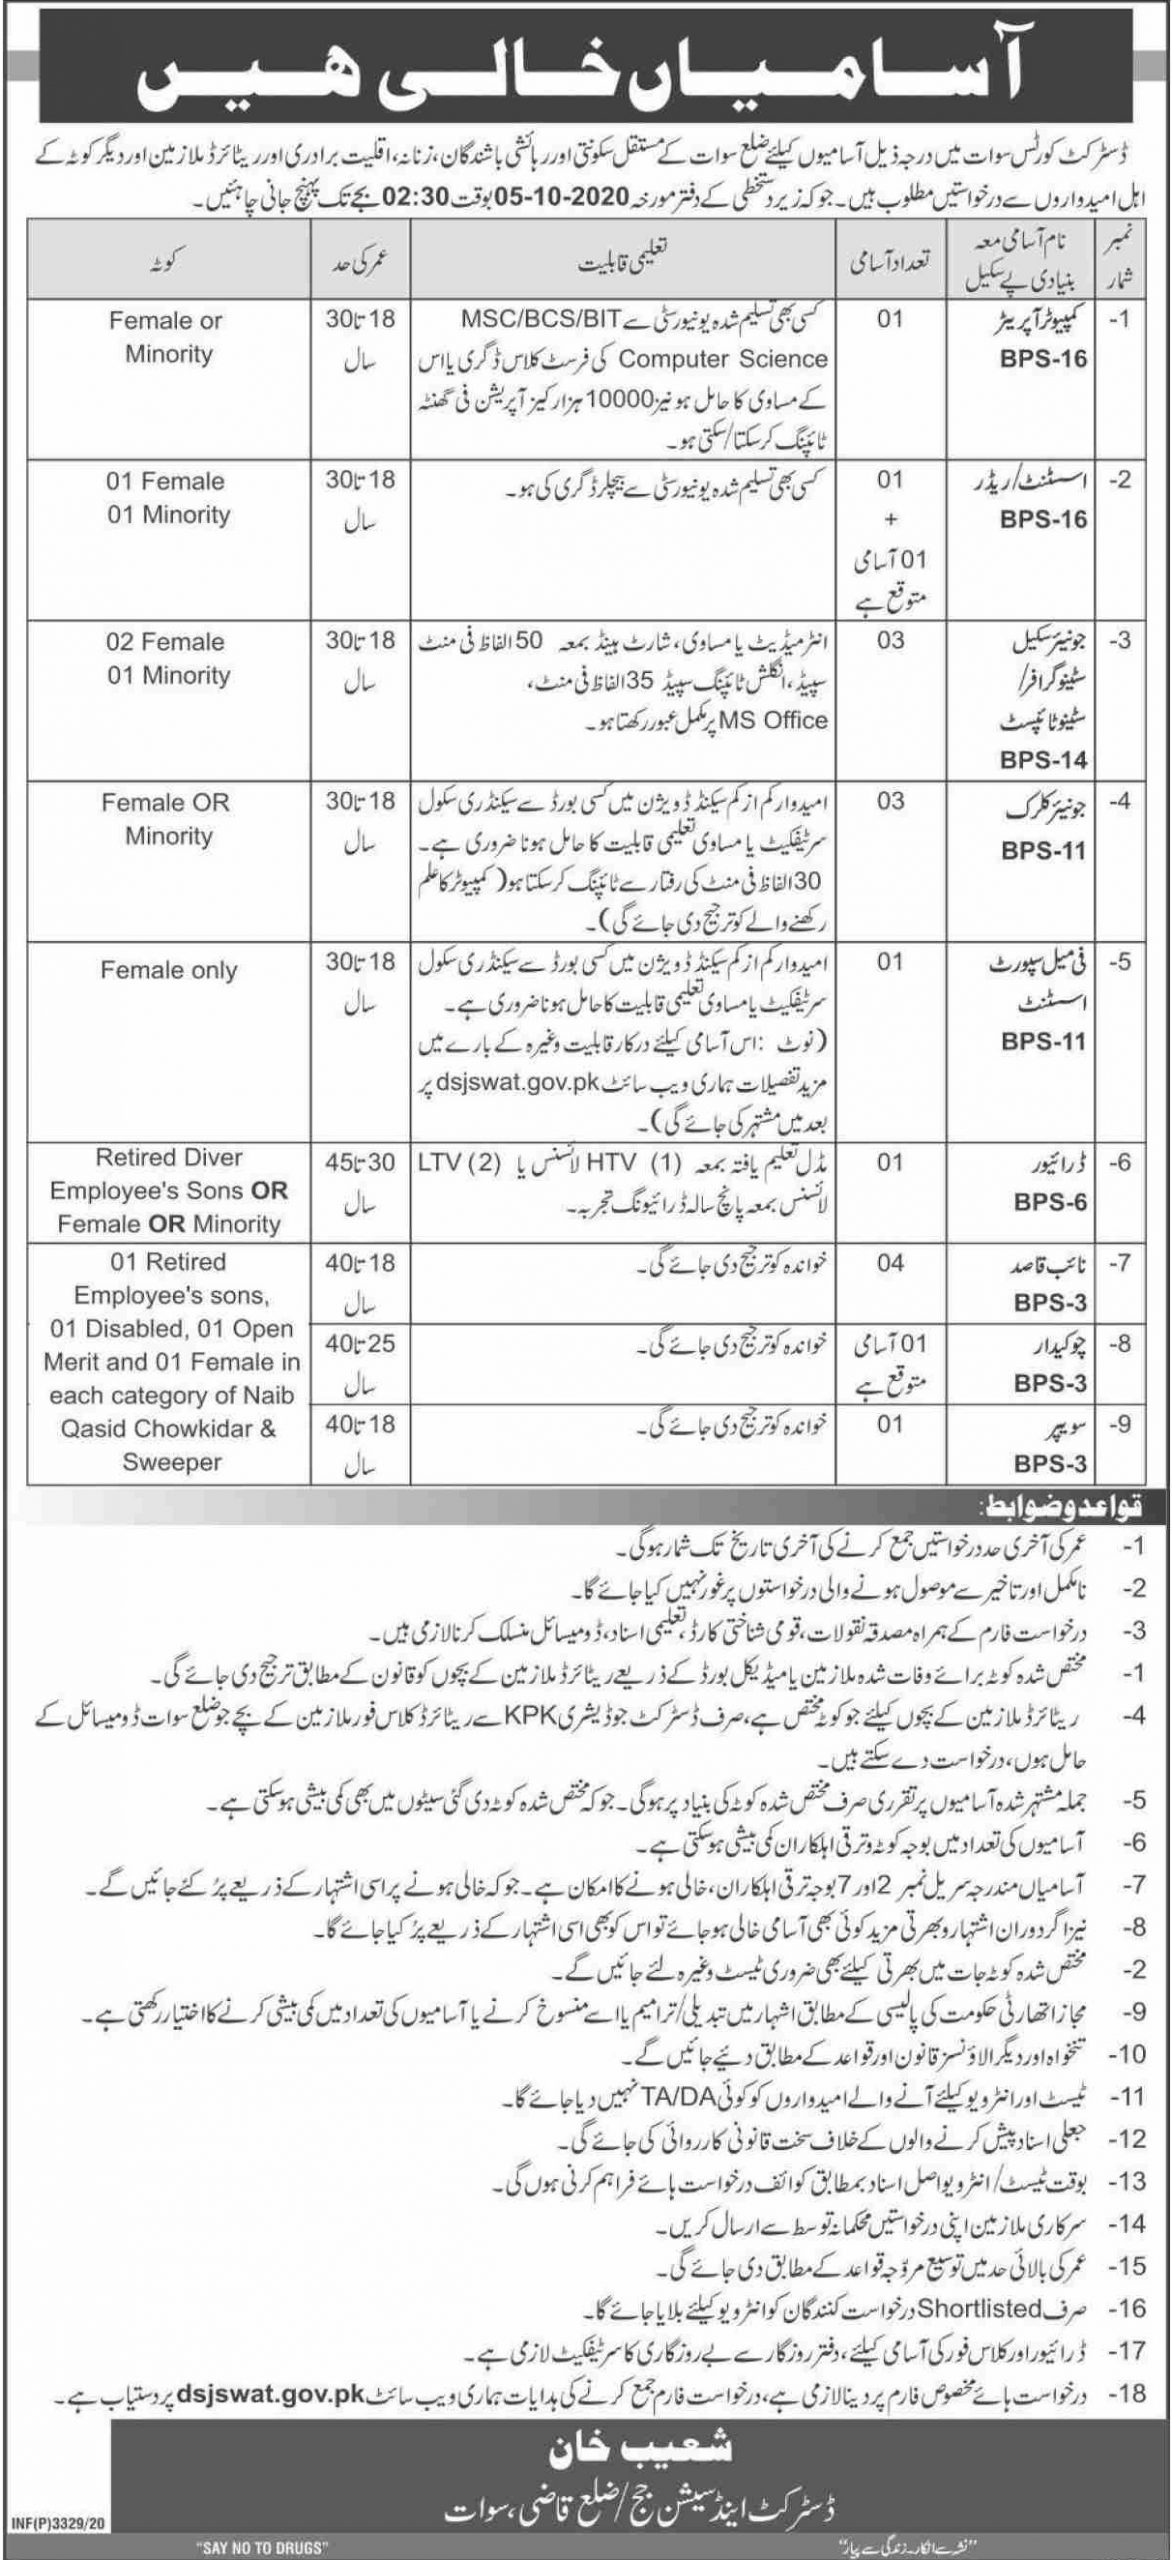 District Courts Swat Jobs September 2020 KPK